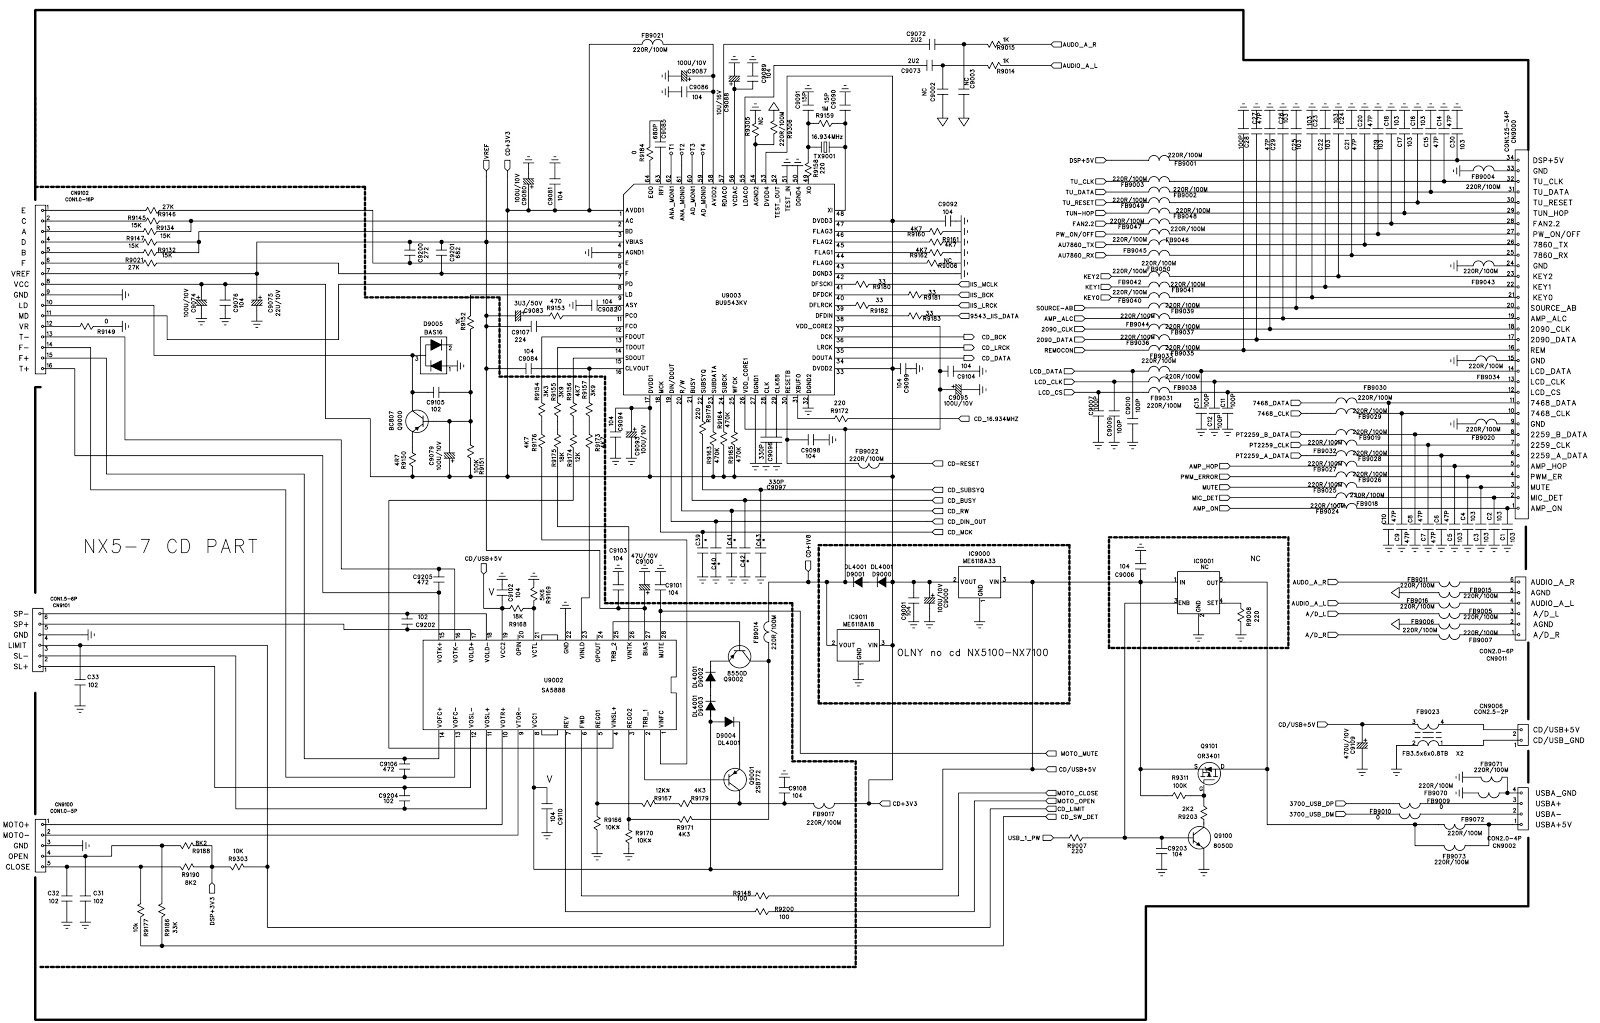 car stereo circuit board diagram circuit and schematics diagram   apktodownload com